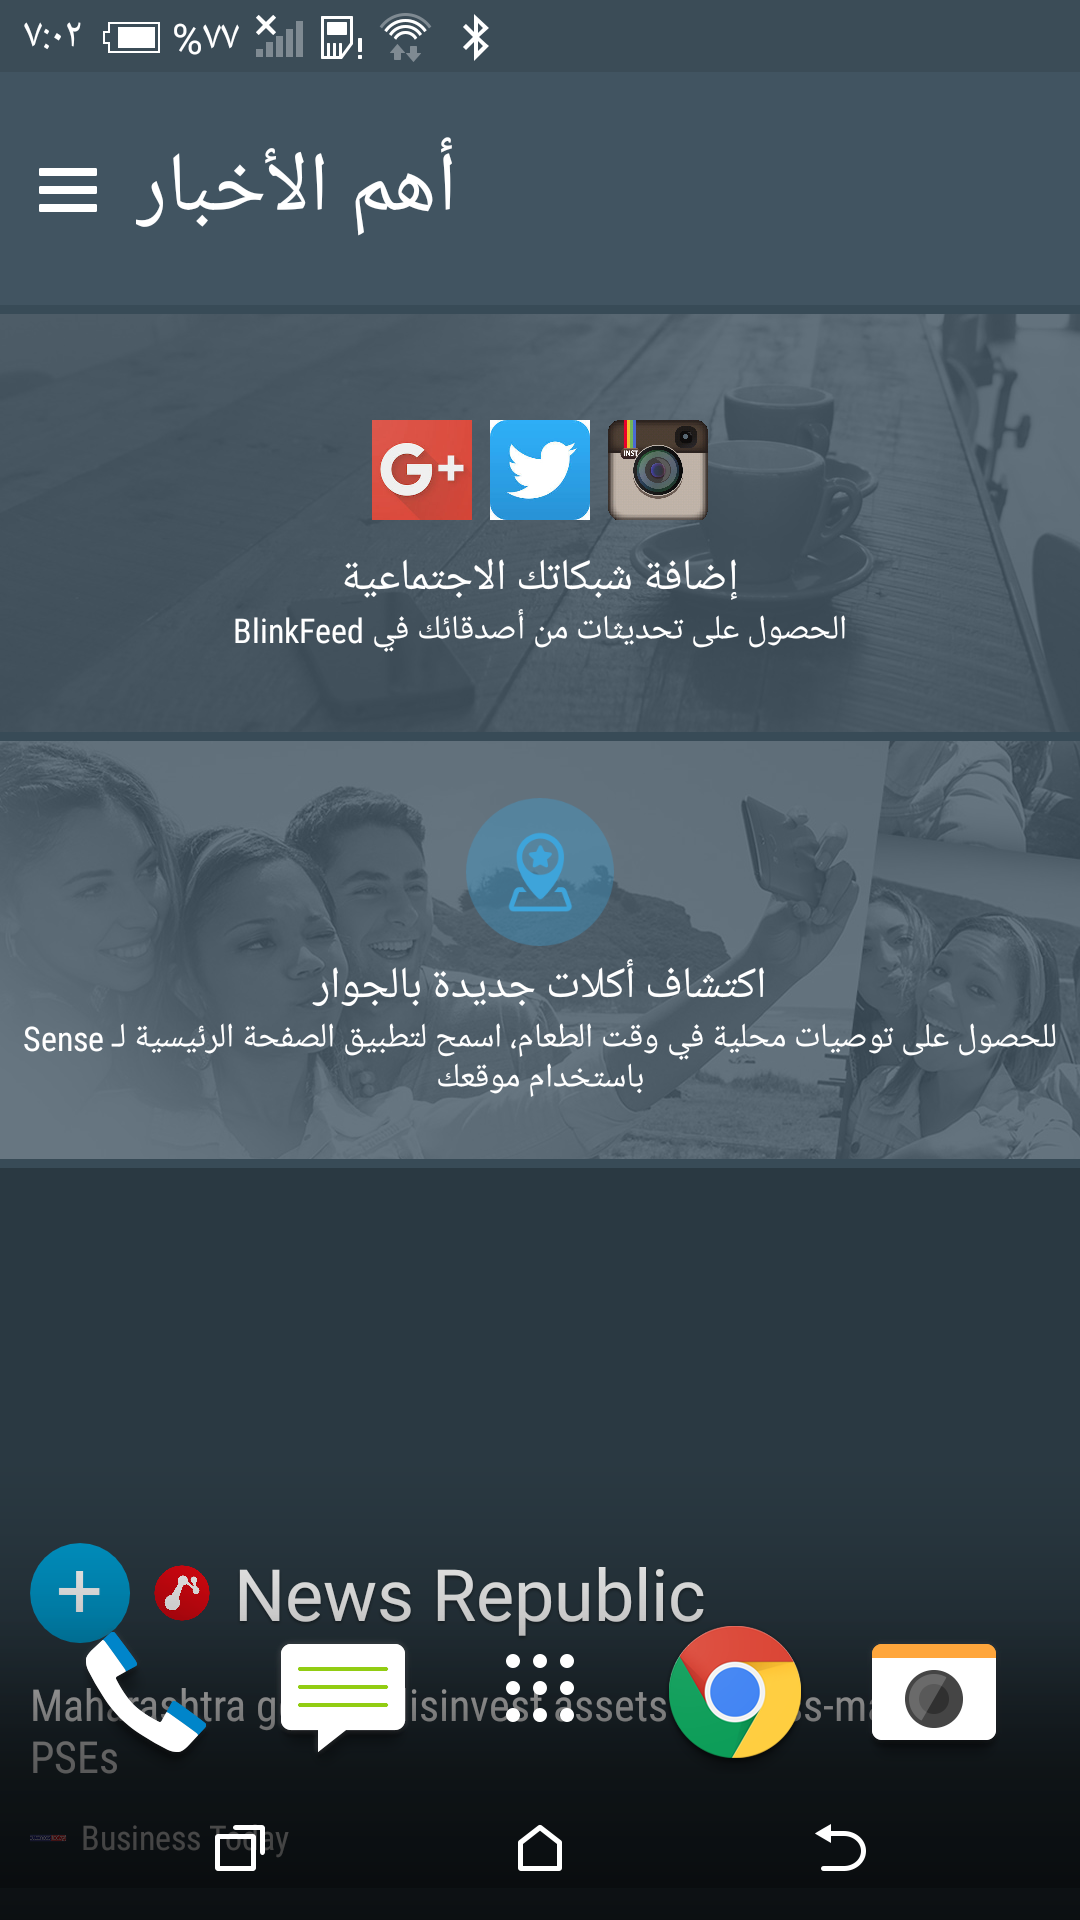 Screenshot_٢٠١٥١١١٤-١٩٠٢٠٨